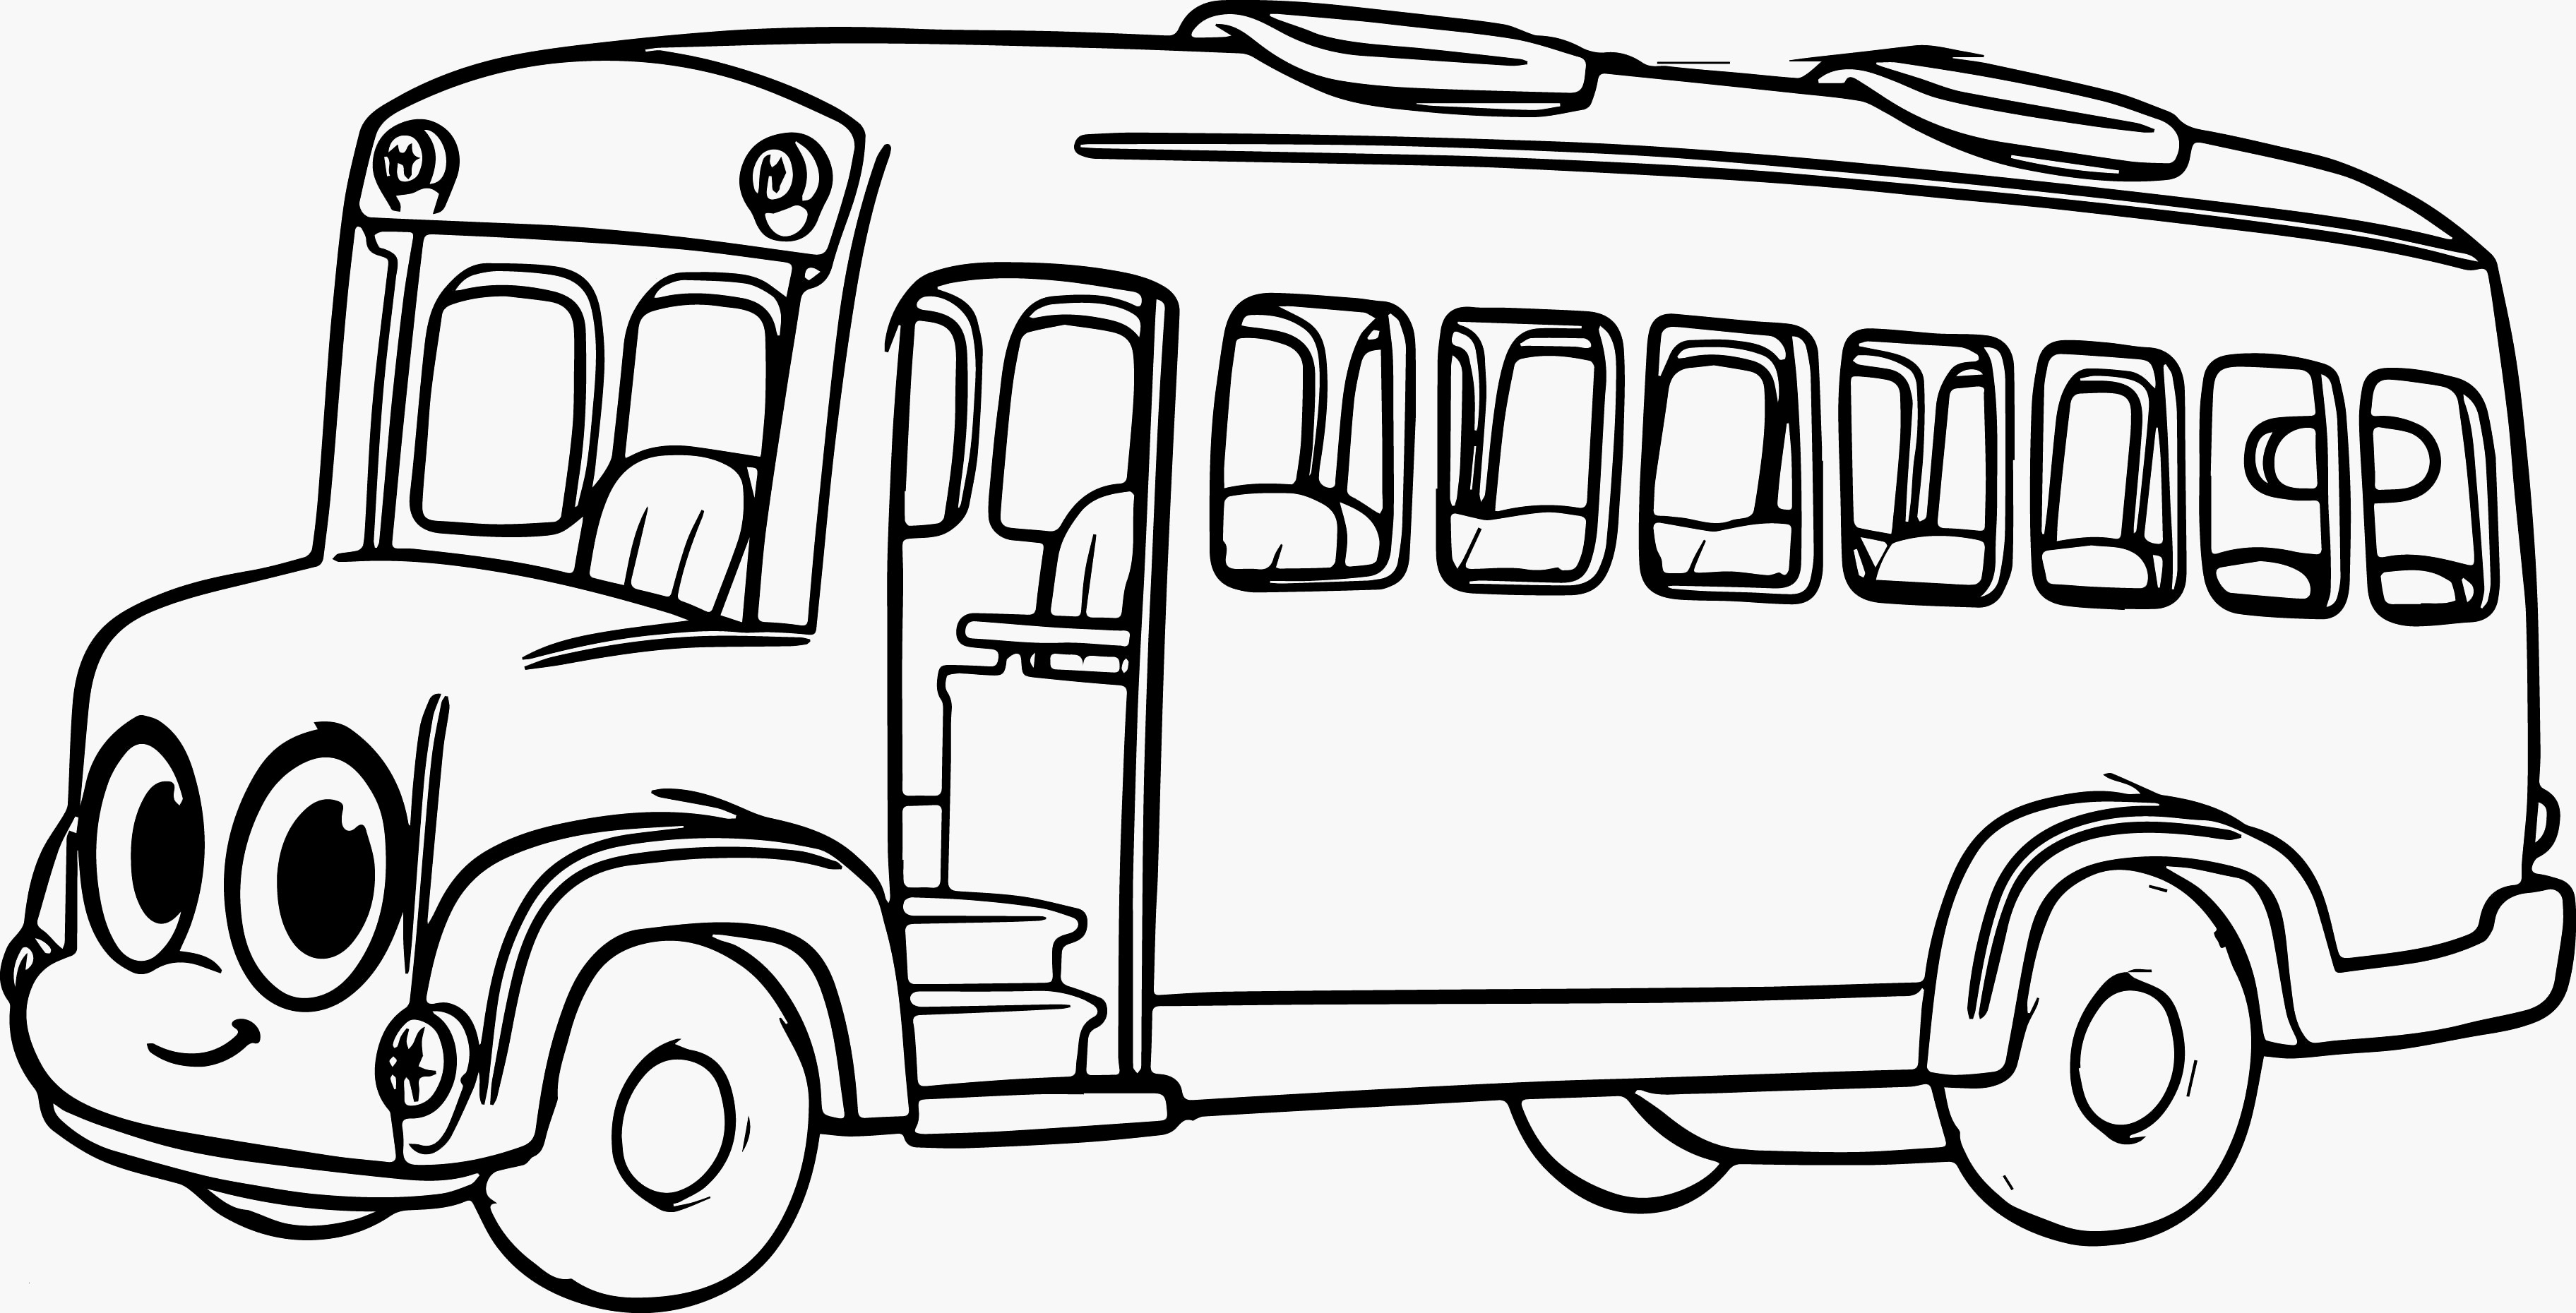 tayo coloring pages - photo#17